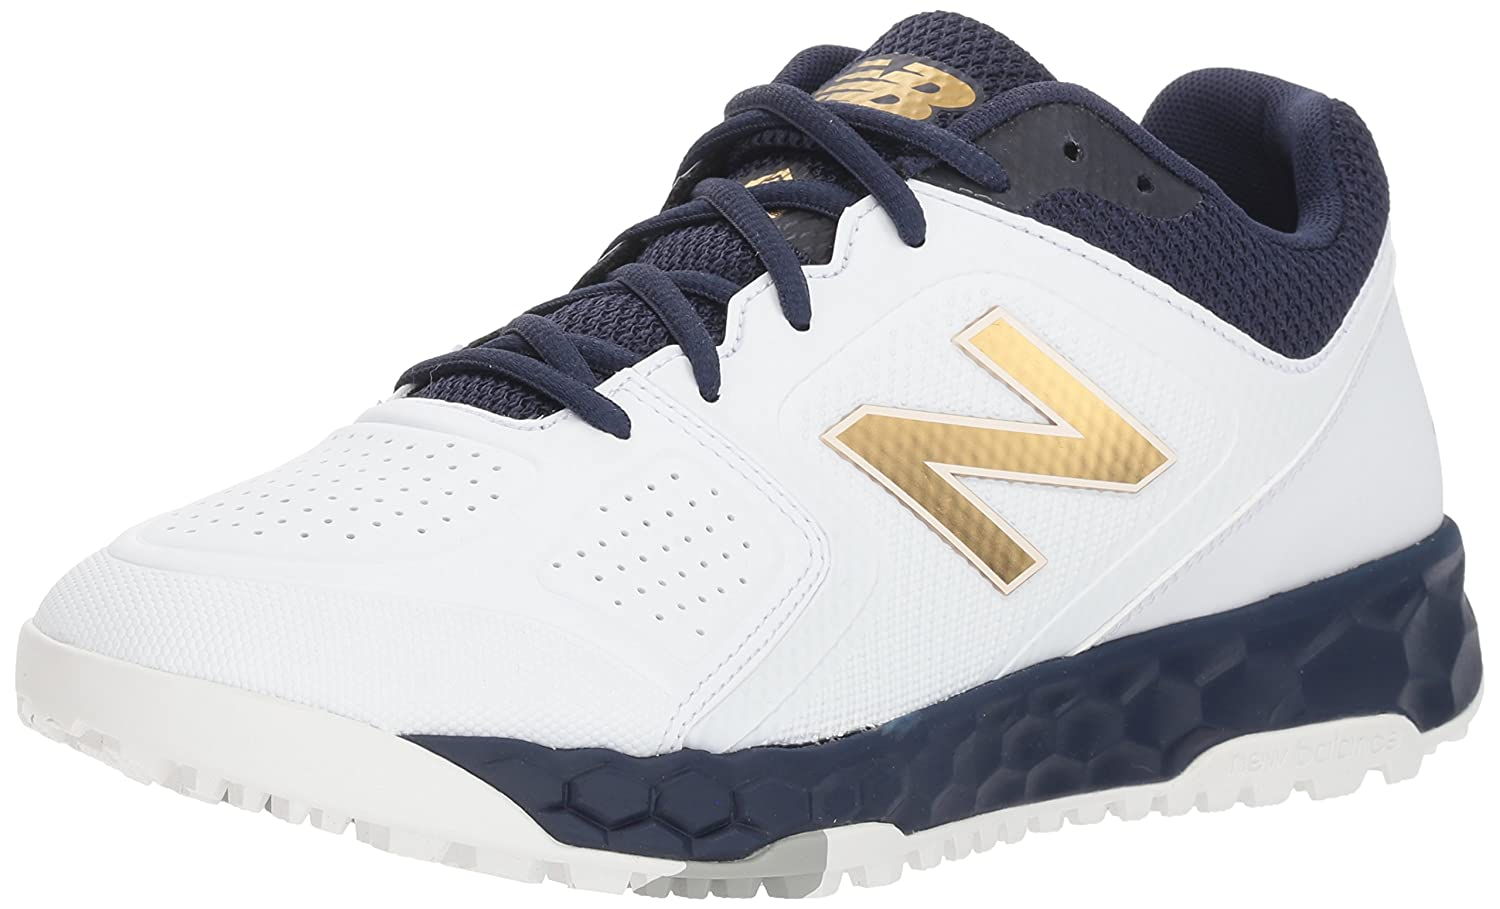 New Balance Women's Velo V1 Turf Softball Shoe B075R6WD8Y 5 B(M) US|Navy/White